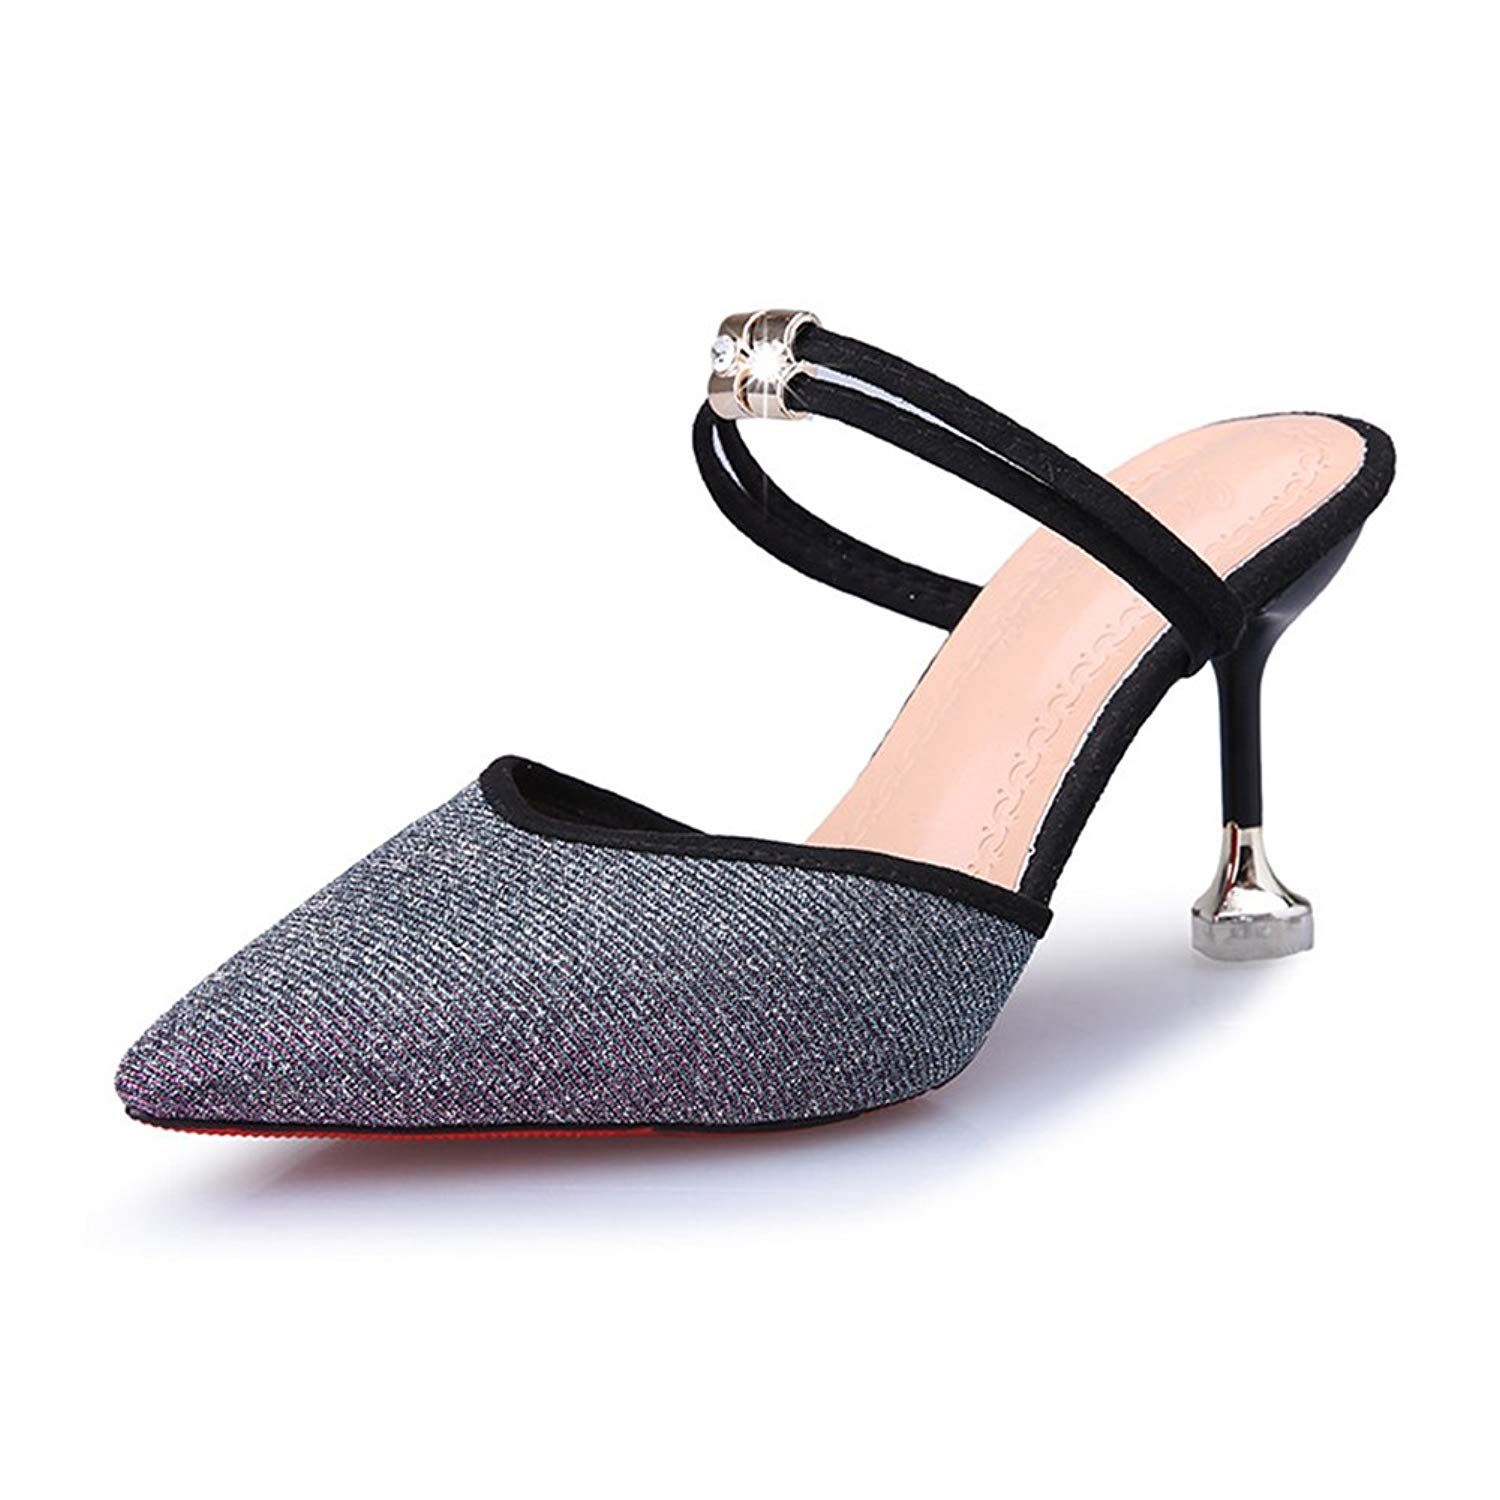 ad8861edf23 Get Quotations · Btrada Women s Sexy Heeled Slide Sandals Pointy Toe Slip On  Ankle Strap Kitten Heel Mules Pumps